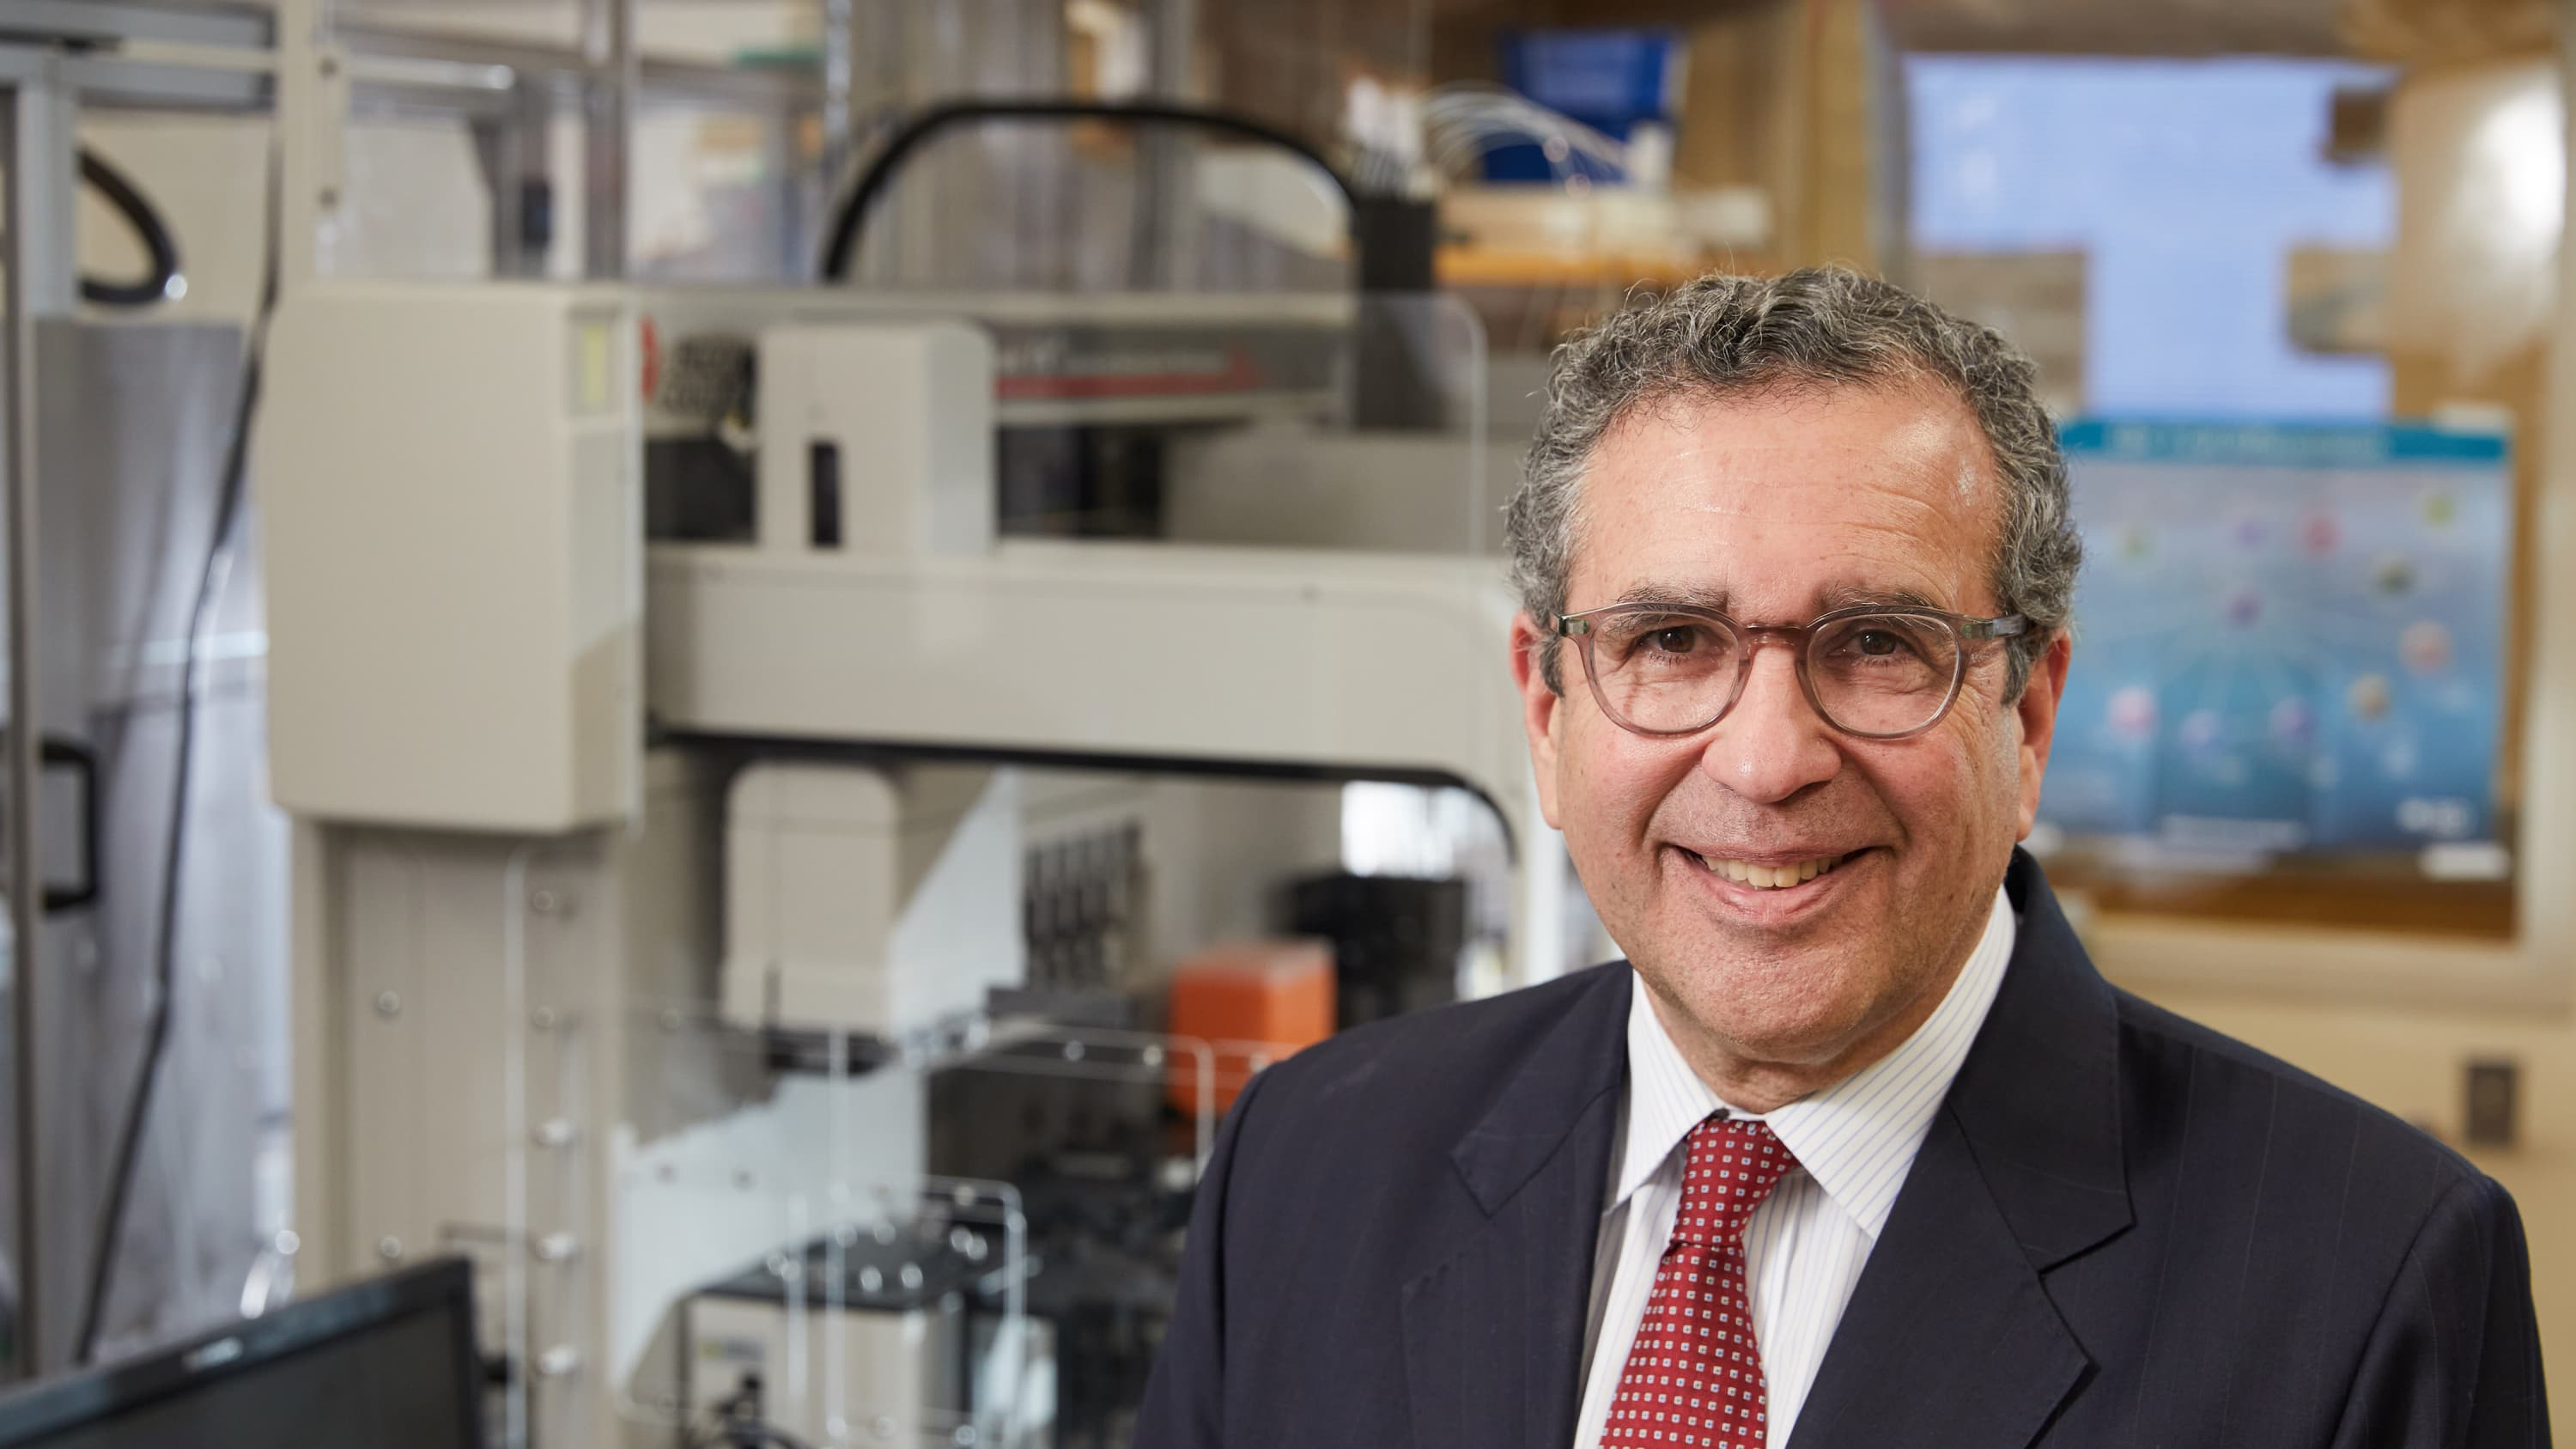 David Hafler, MD, is a world-renowned neuroimmunologist specializing in multiple sclerosis.